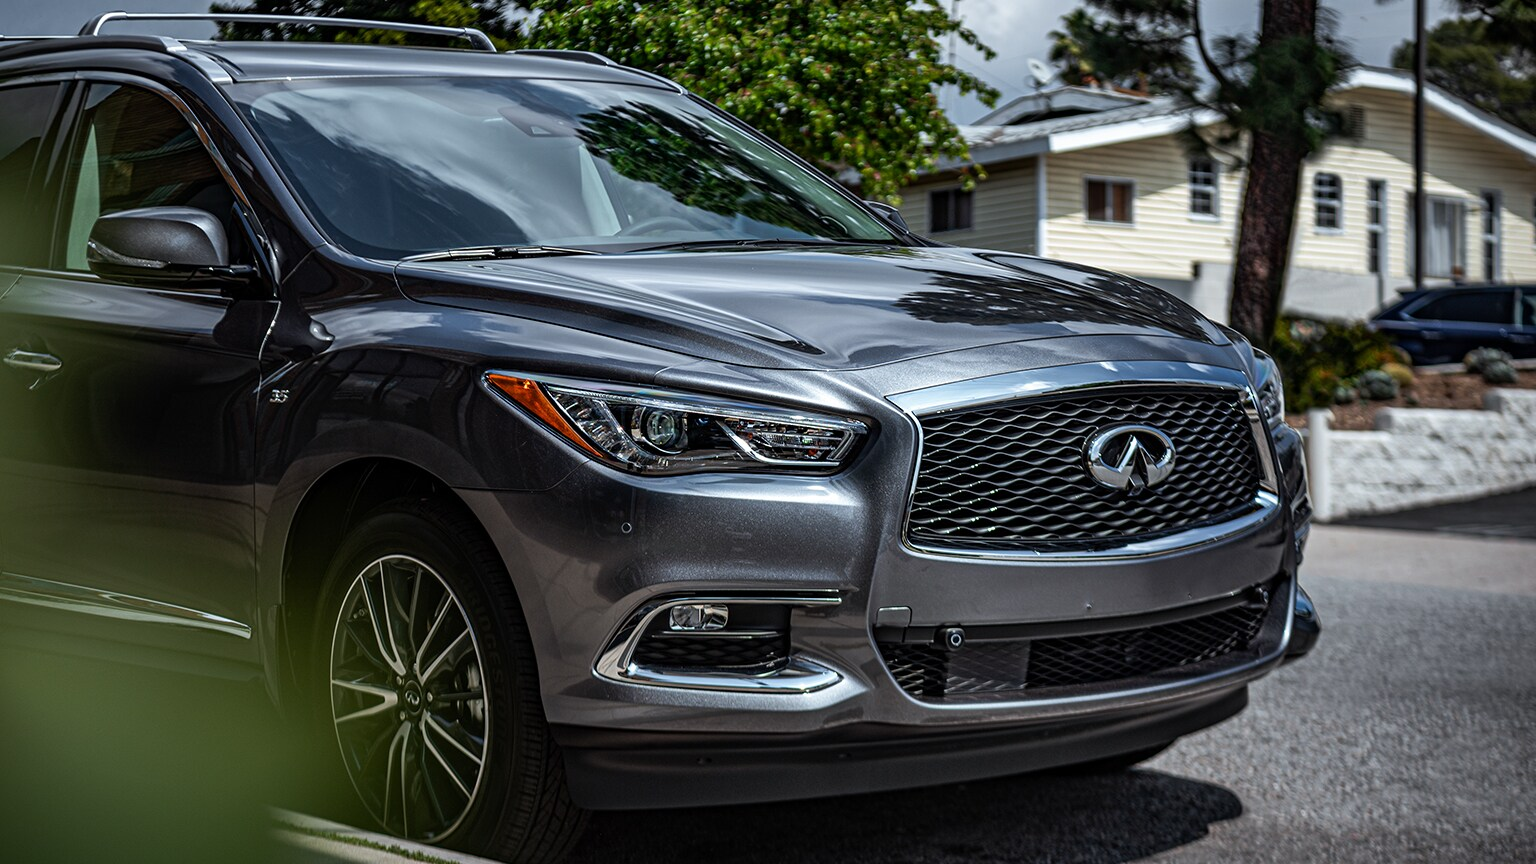 2020 infiniti qx60 - capital motor cars